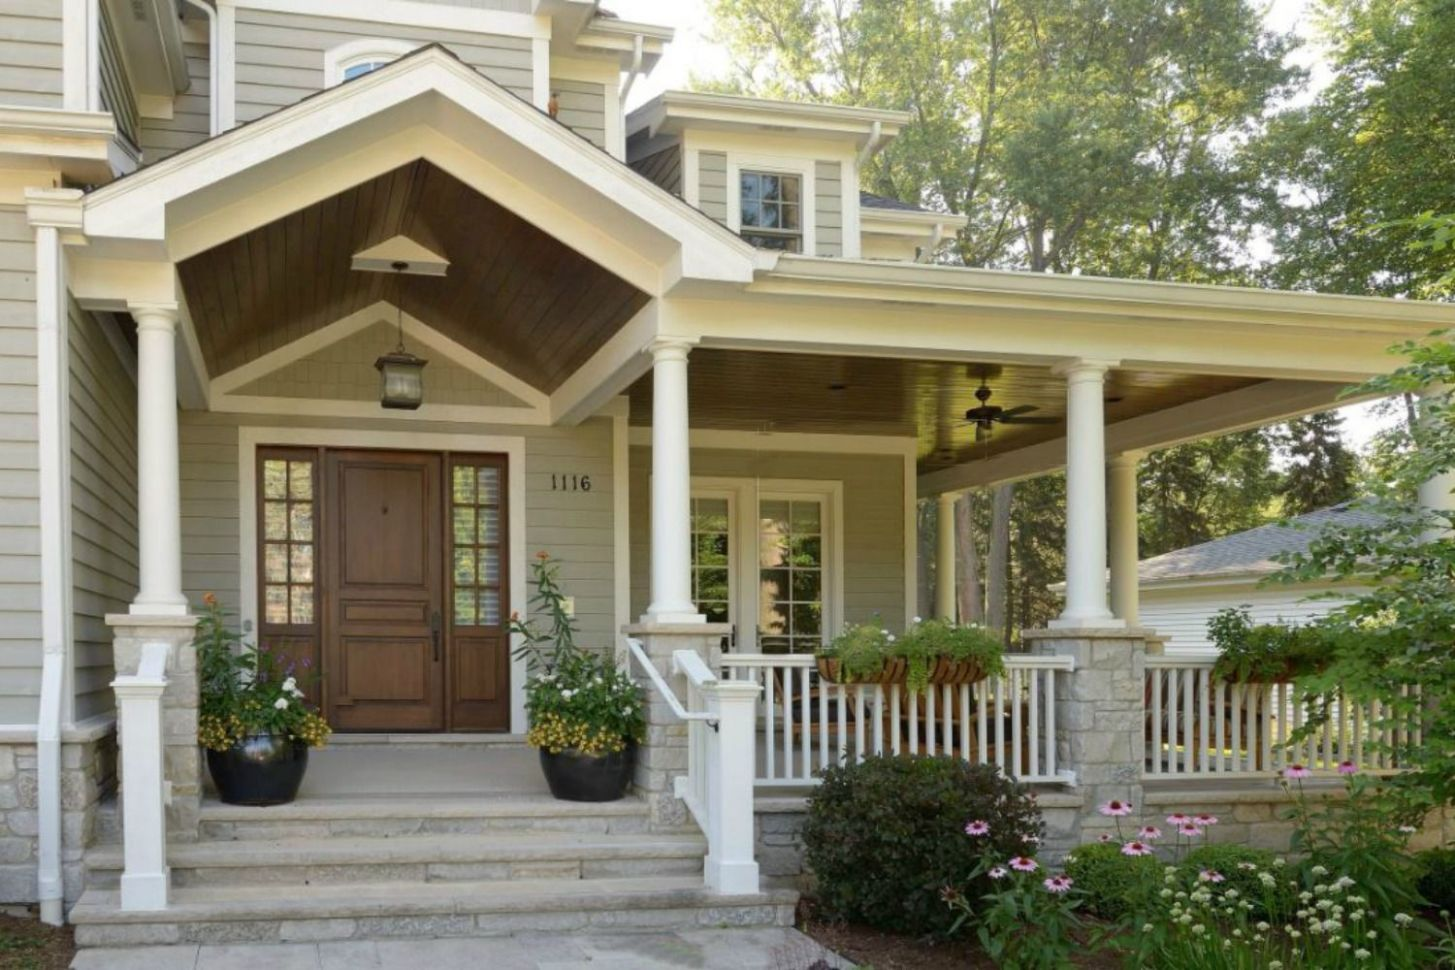 9 Porch Ideas for Every Type of Home